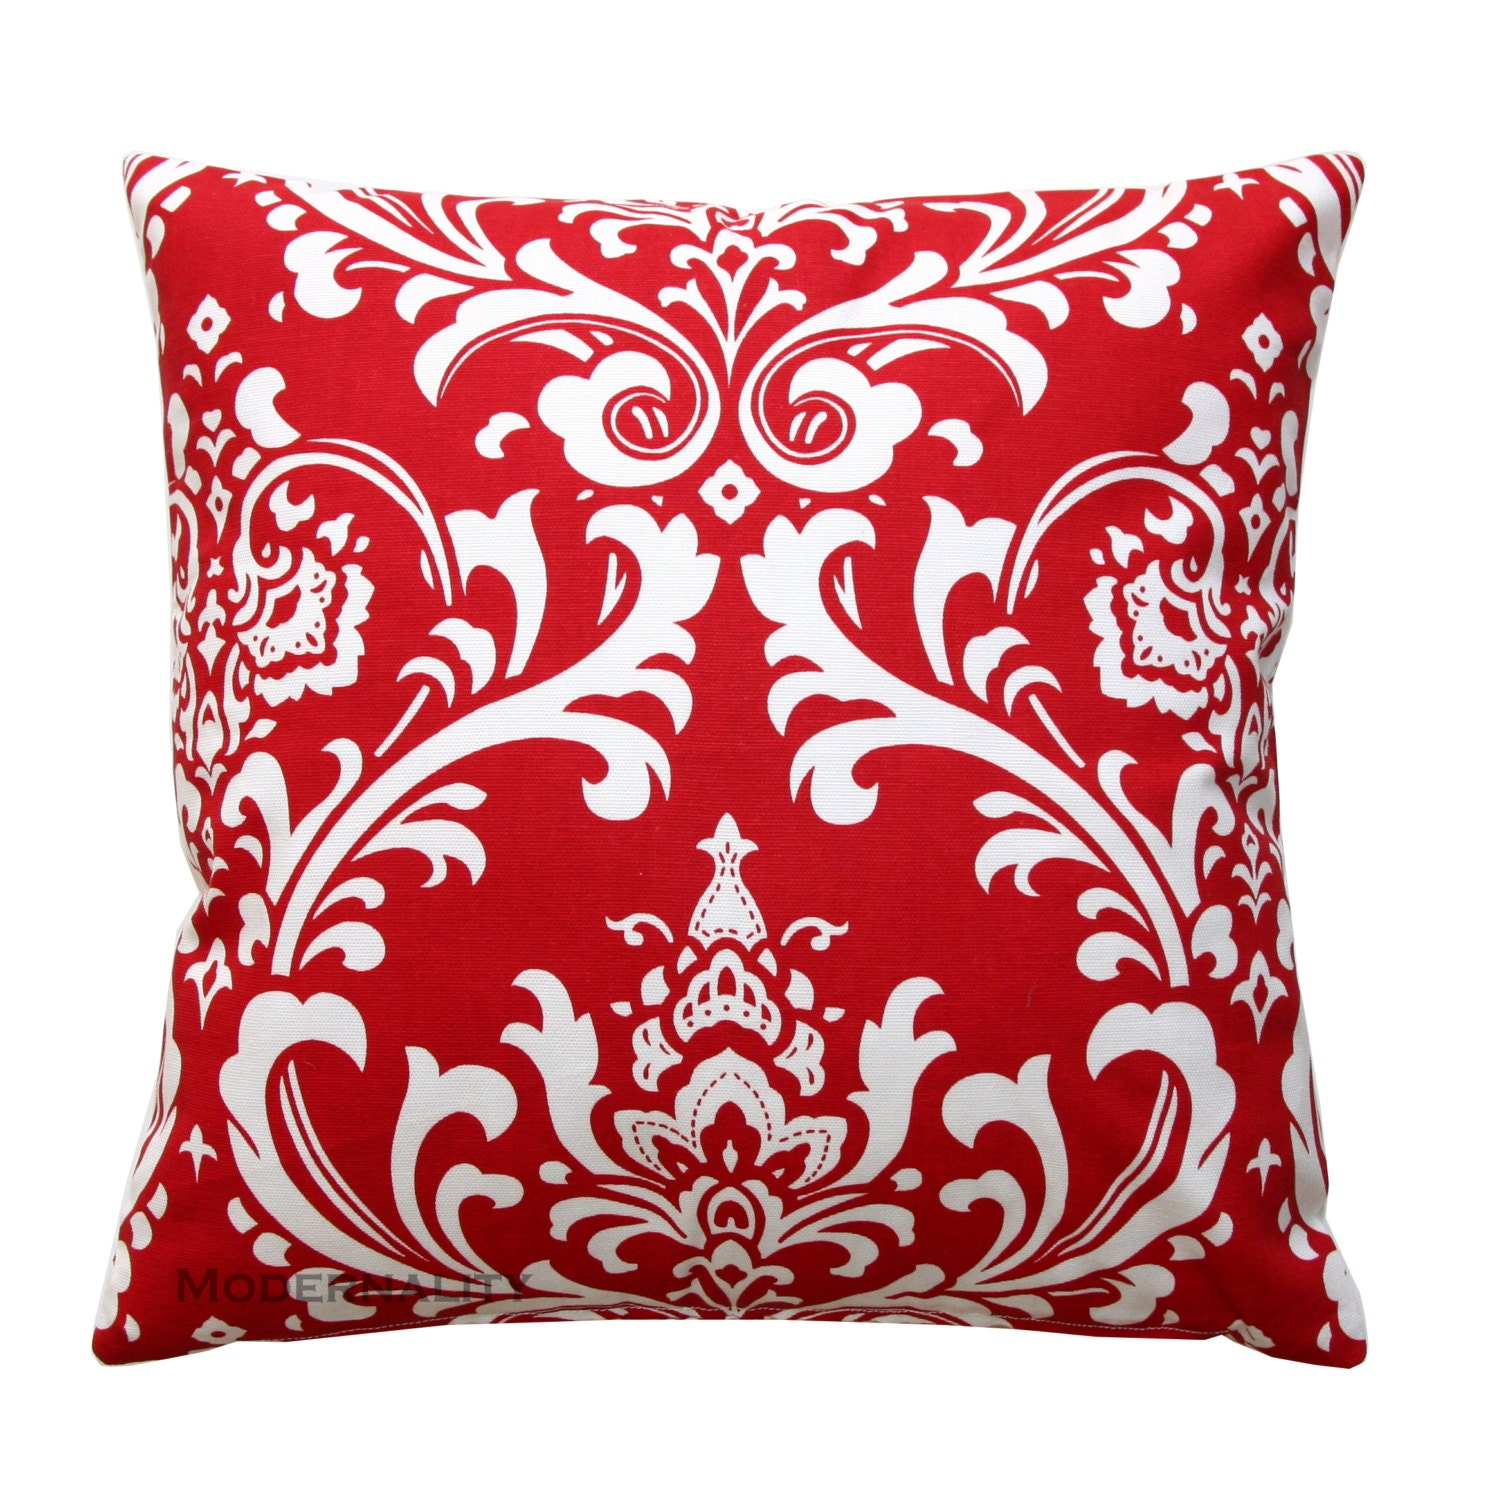 Throw Pillows In Clearance : CLEARANCE Throw Pillows Damask Pillow Ozborne Lipstick Red